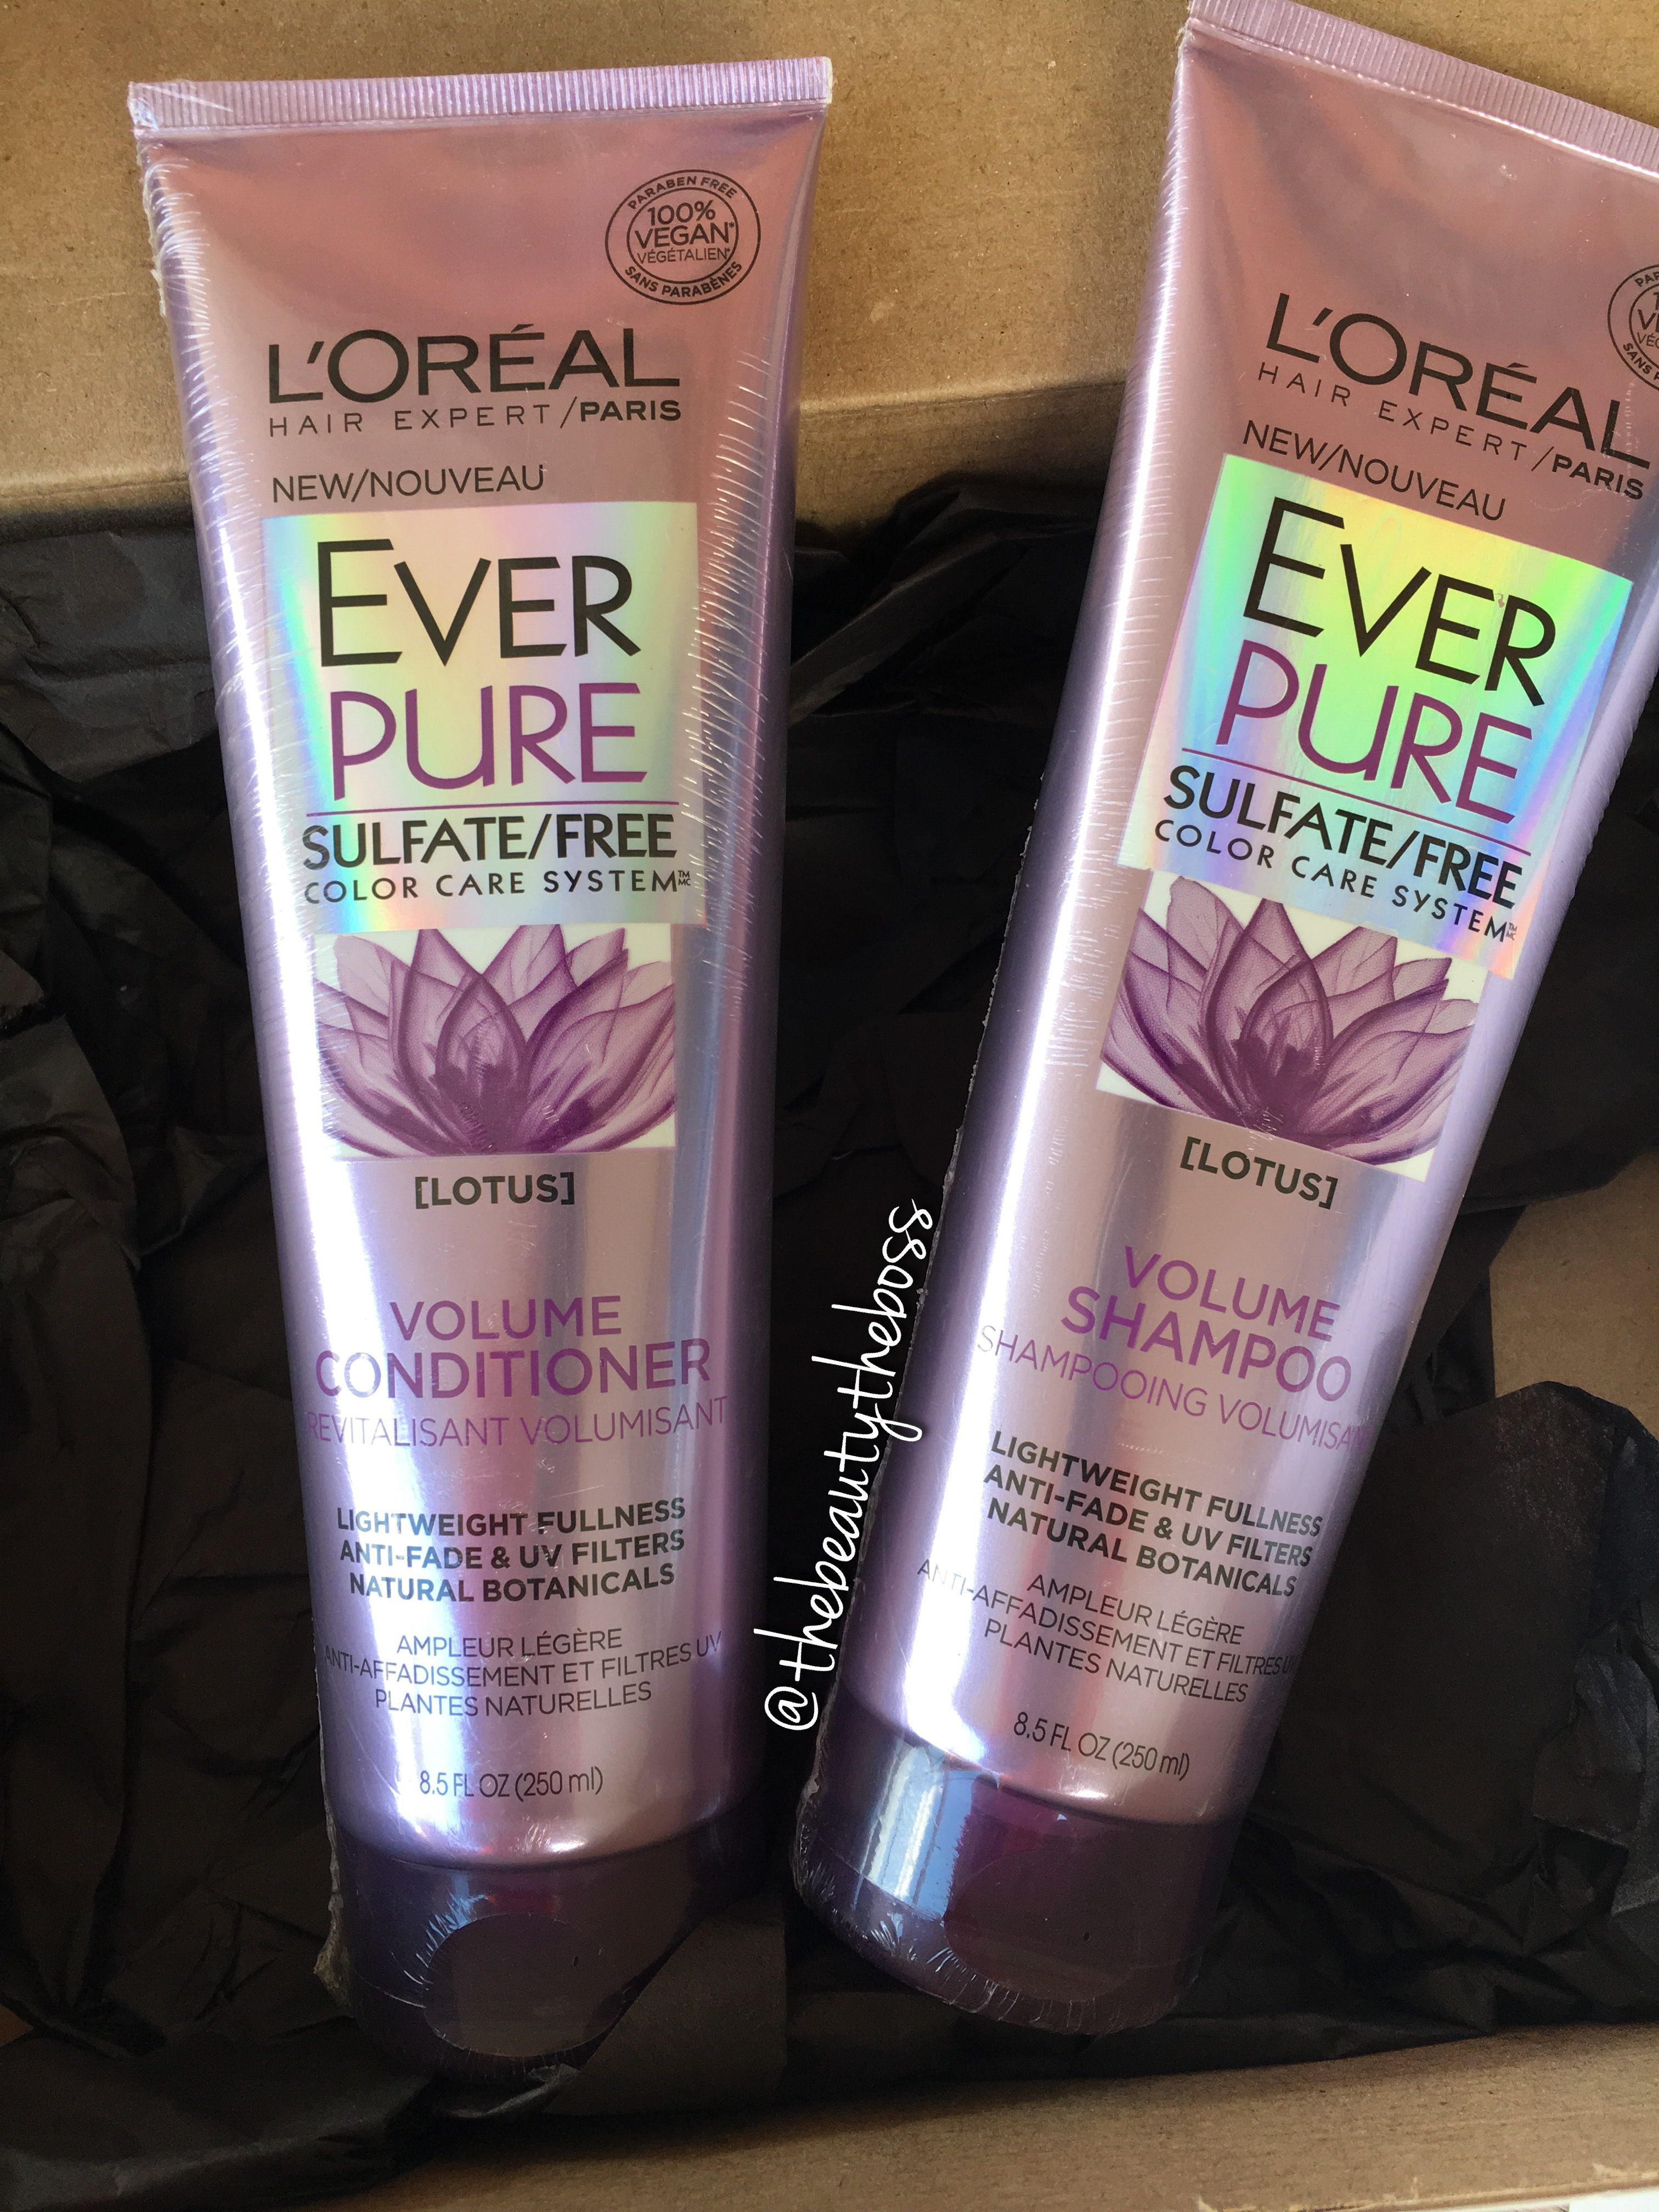 I received this product complimentary of #Influenster for testing purposes. #FreeYourHair #ad